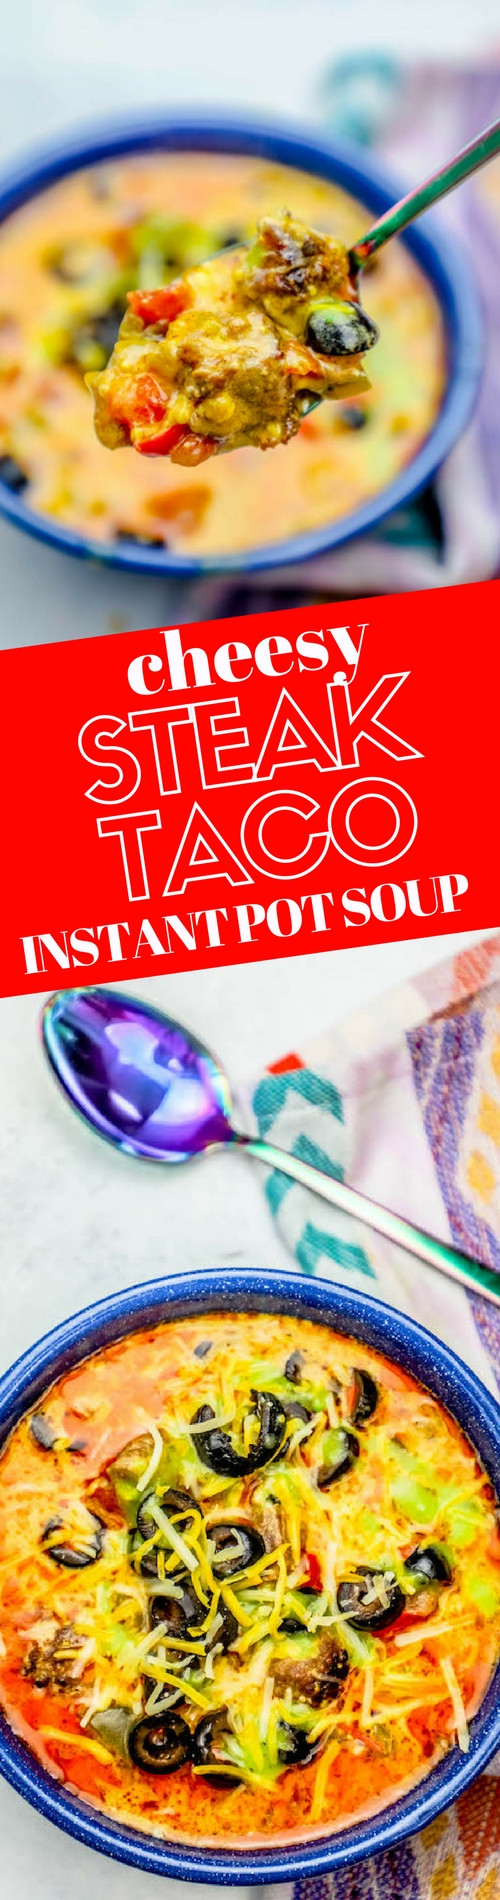 Instant Pot Keto Taco Soup  Low Carb Keto Easy Instant Pot Cheesy Steak Taco Soup Recipe